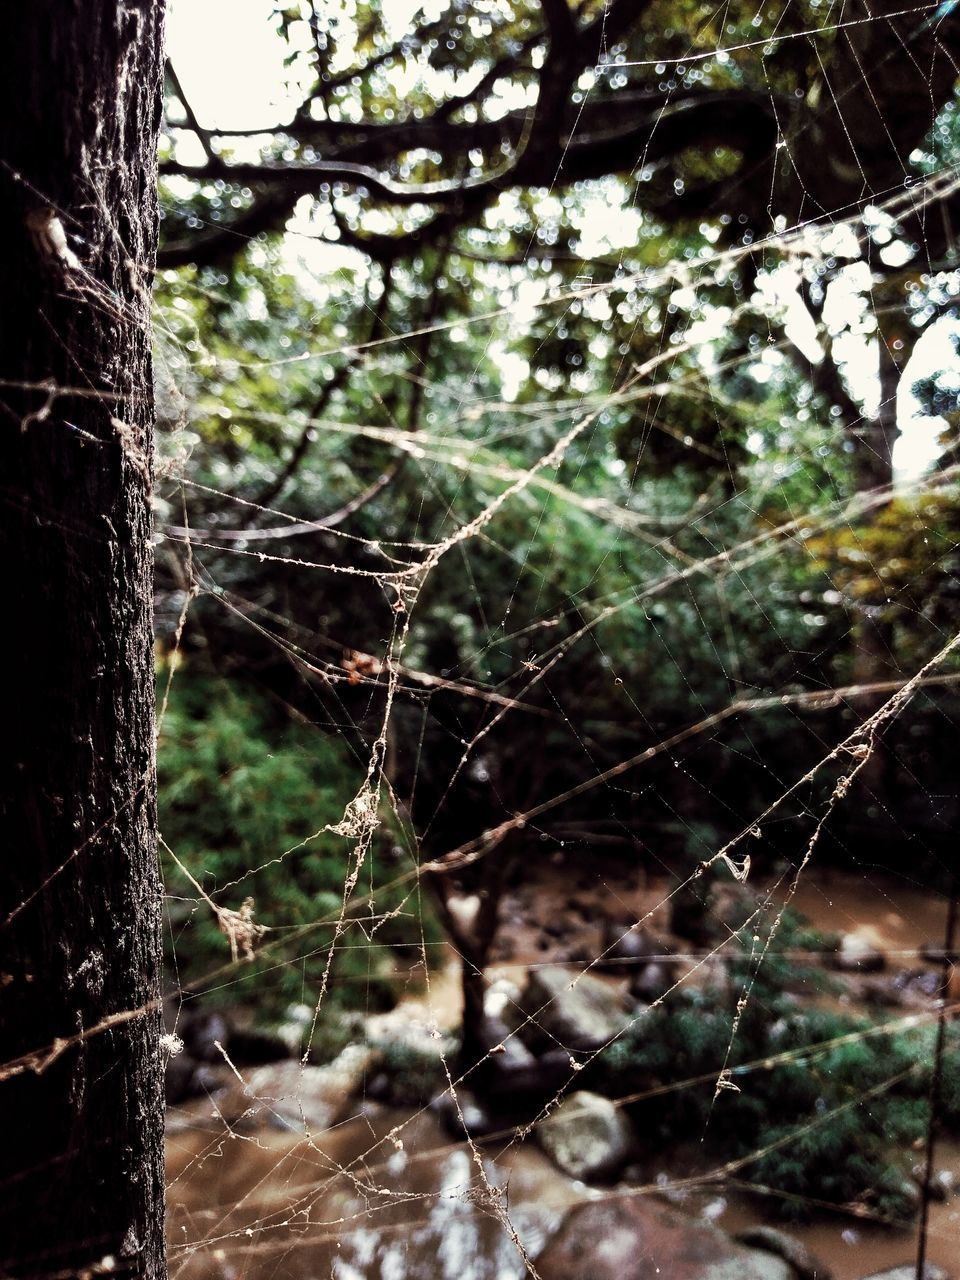 tree, plant, tree trunk, trunk, focus on foreground, nature, no people, day, forest, spider web, growth, close-up, land, outdoors, fragility, branch, selective focus, beauty in nature, tranquility, complexity